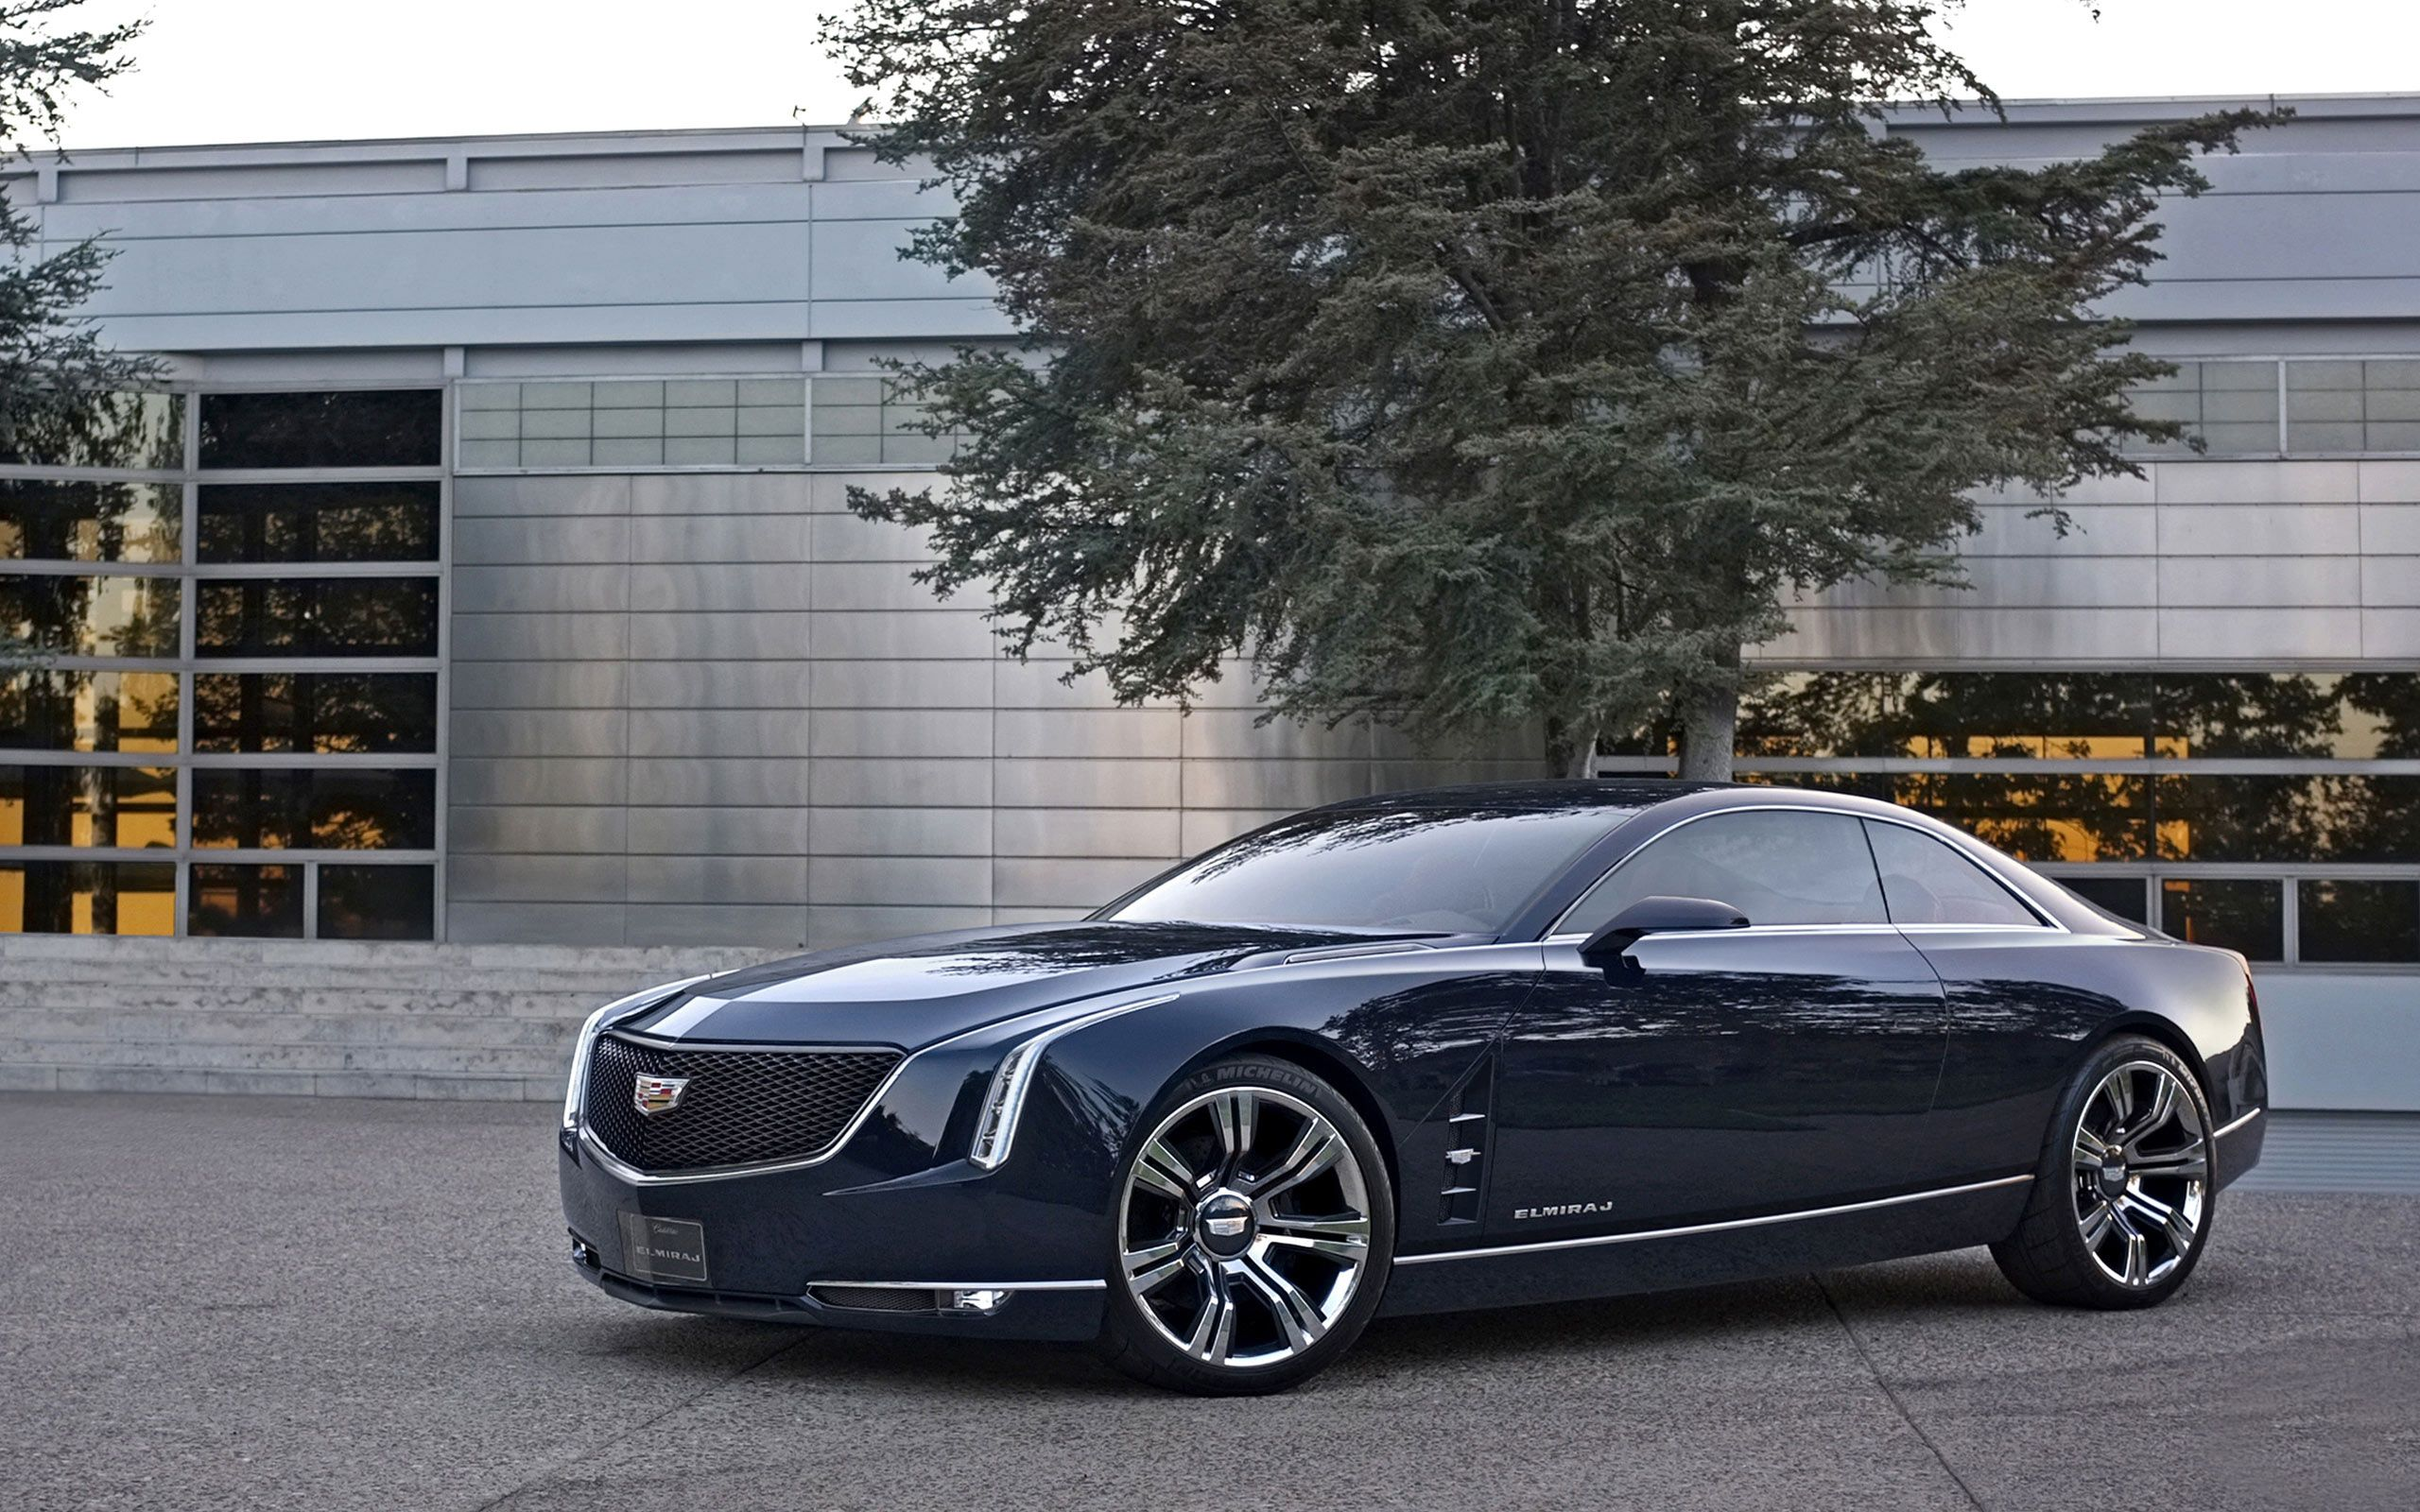 Last Night, Cadillac Debuted Its New Full Size Luxury Coupe Concept. Dubbed  The Elmiraj, The Big Coupe Is Going To Be The Talk Of Pebble, Hopefully  Hinting ...